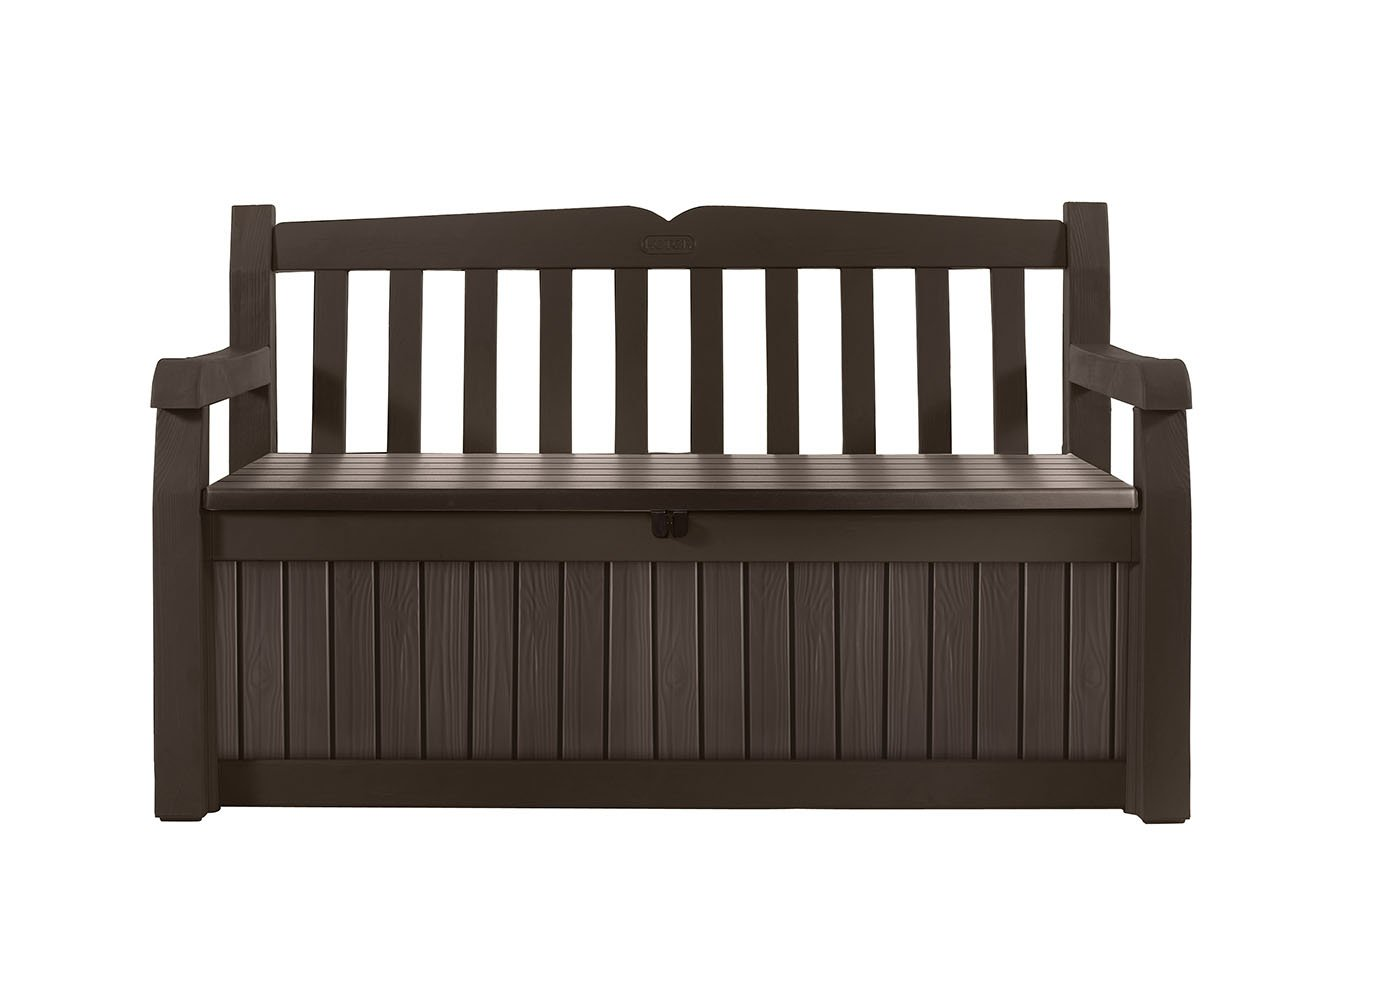 Remarkable Details About Outdoor Storage Bench Garden Pool Deck Box Weatherproof Patio Furniture Brown Pabps2019 Chair Design Images Pabps2019Com